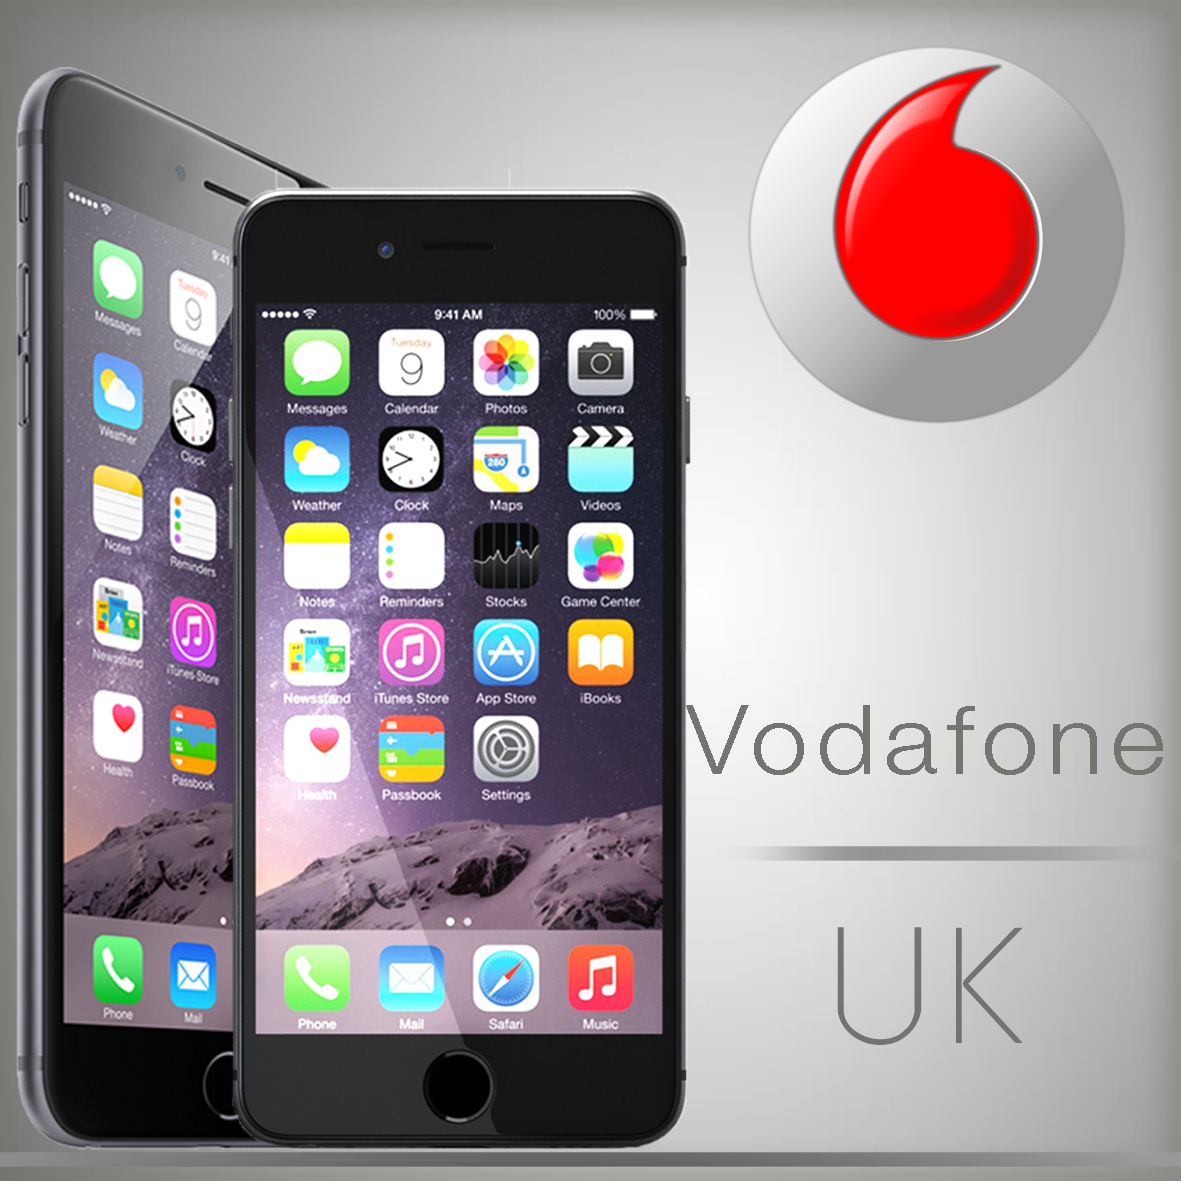 How To Unlock Vodafone Iphone 6 5s 5c 5 4s 4 From Uk Unlock Iphone Unlock My Iphone Unlock Iphone 5